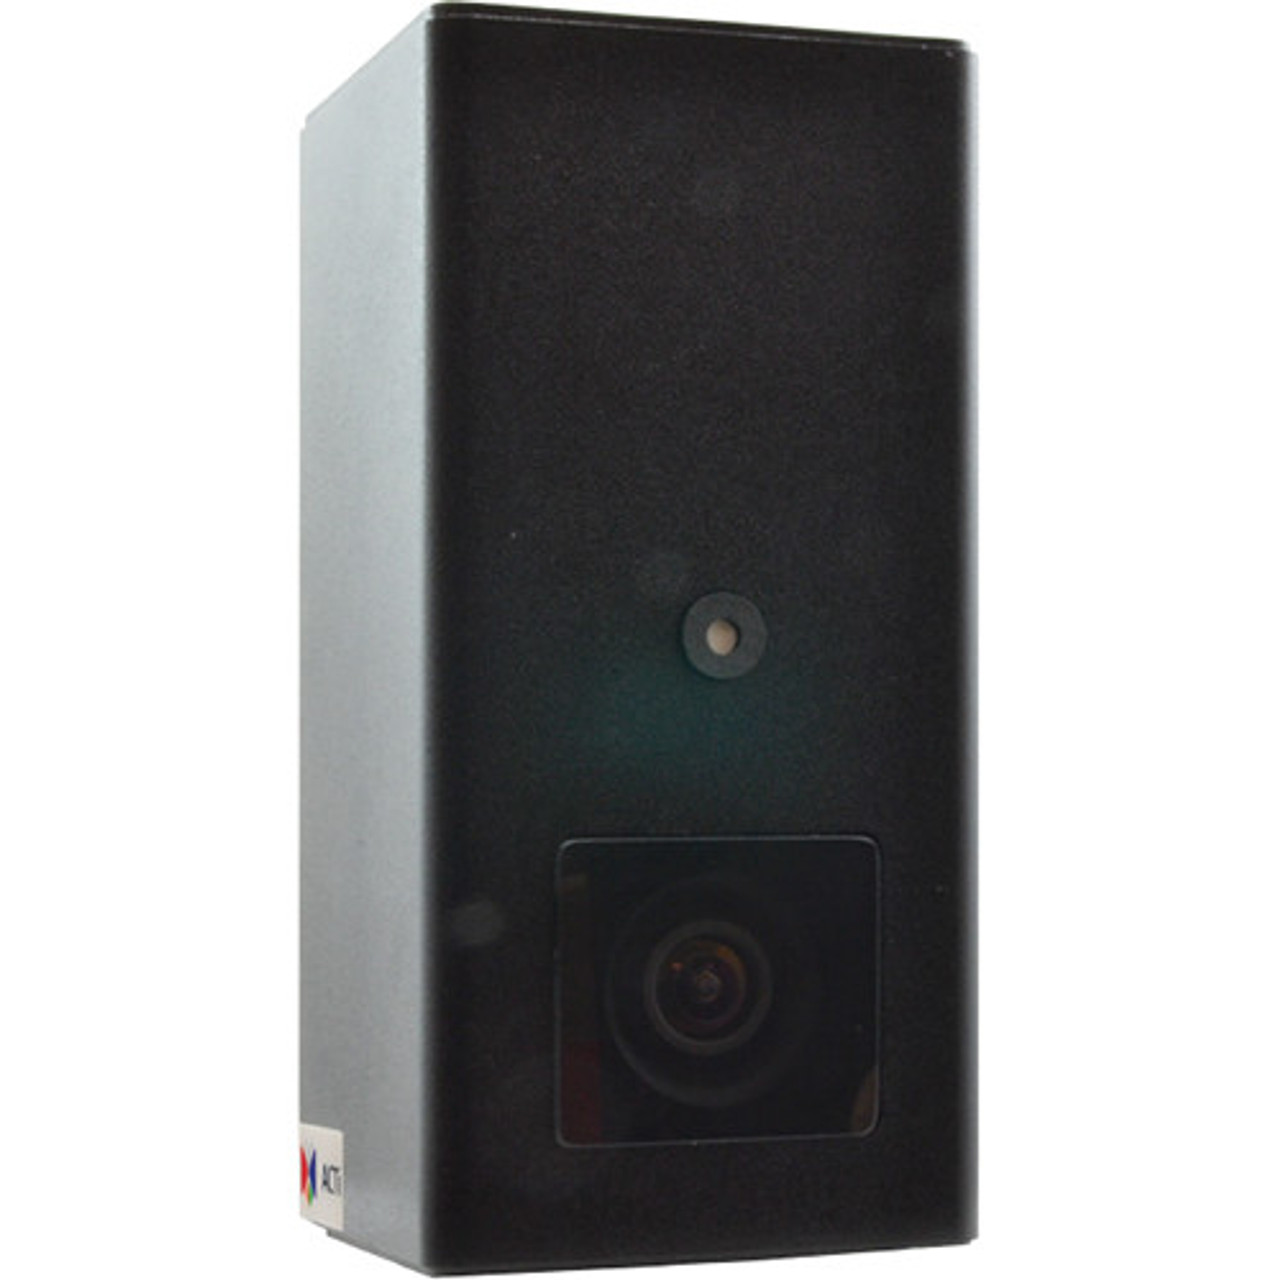 3MP Video Analytics In-Wall Box Camera